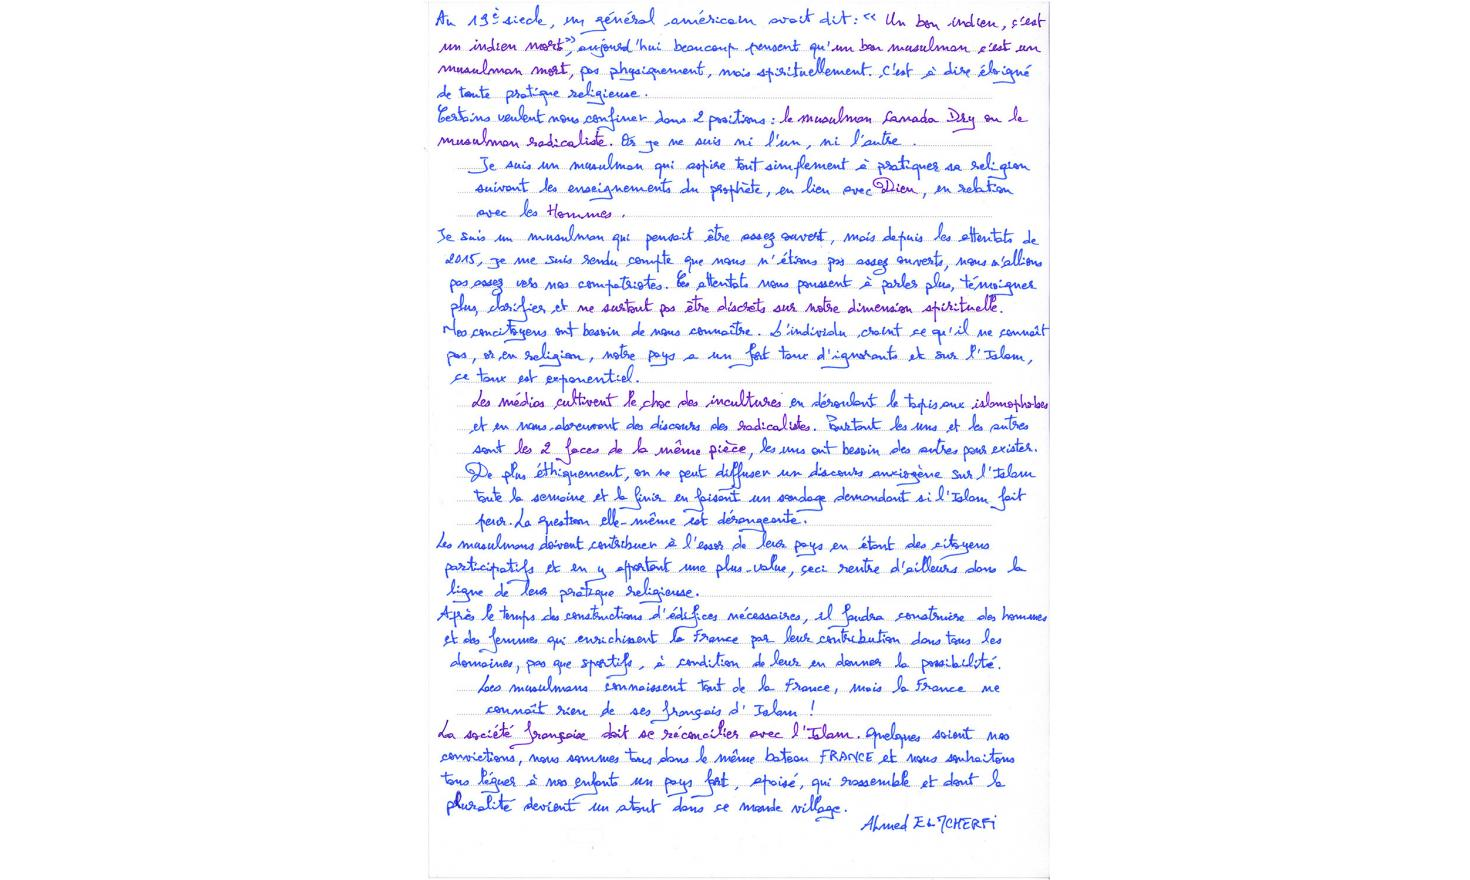 Ahmed Elmcherfi's handwritten text